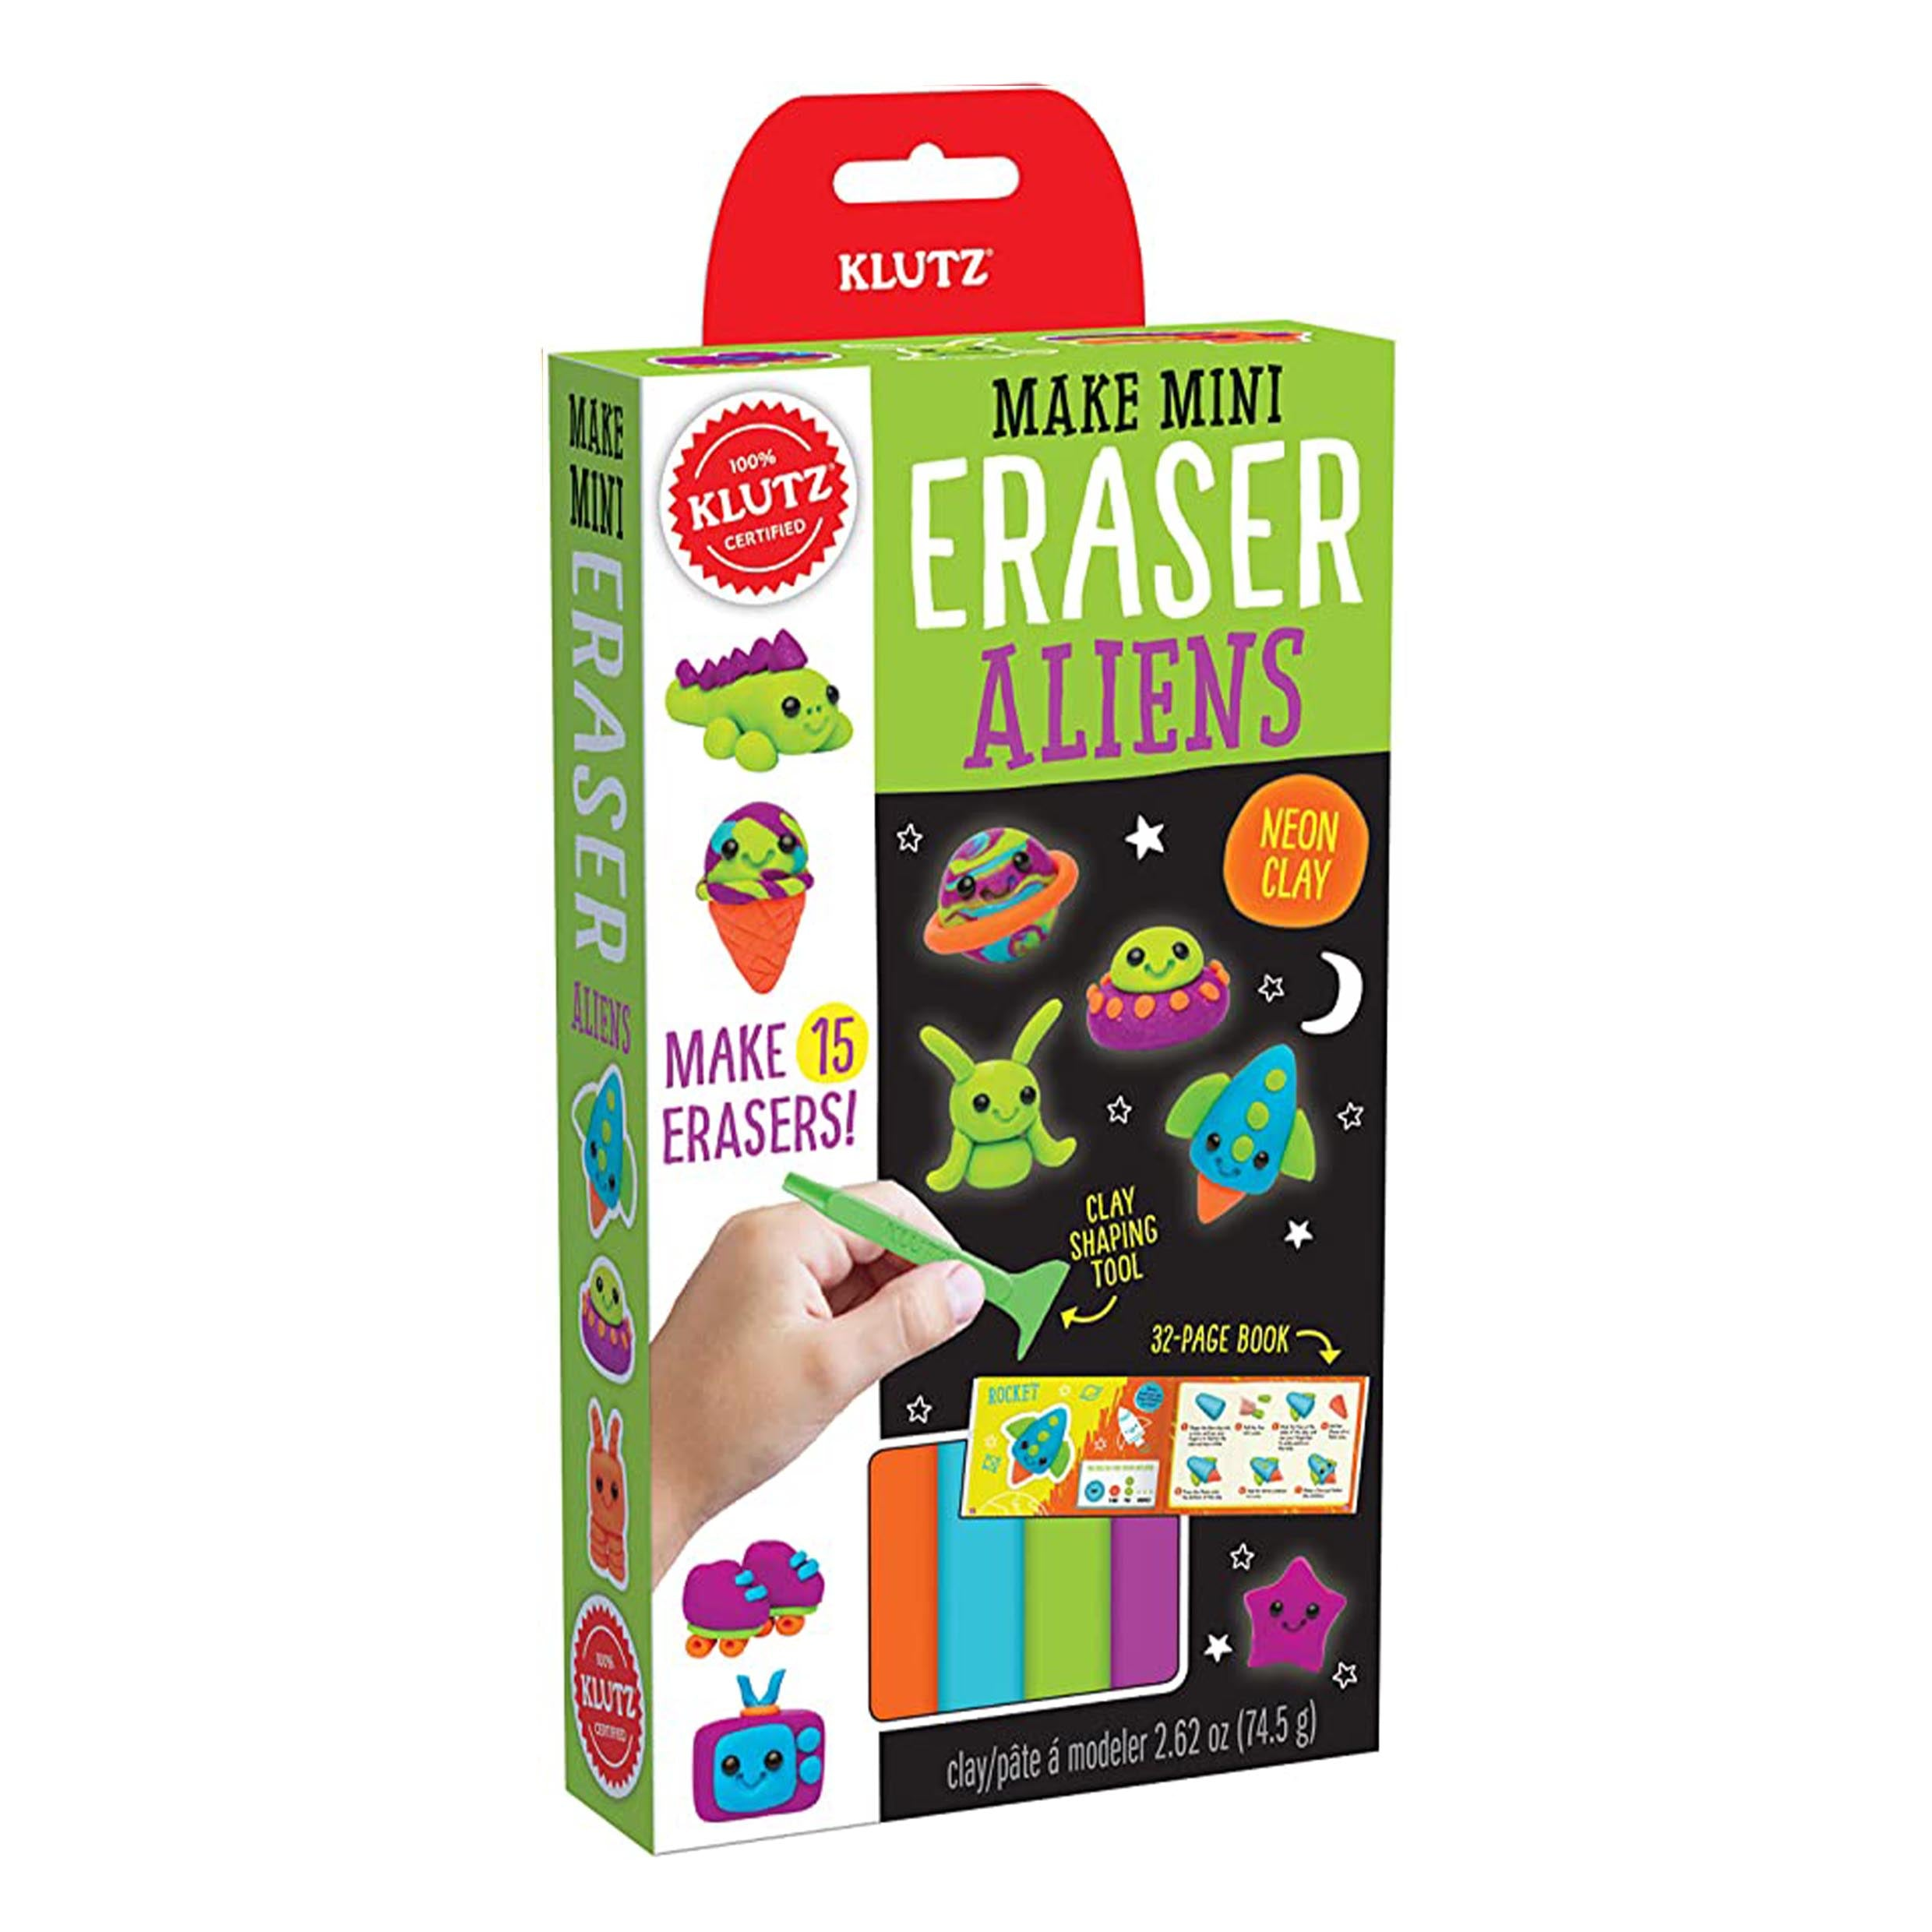 Make Mini Eraser Kits - Aliens by Klutz - K. A. Artist Shop